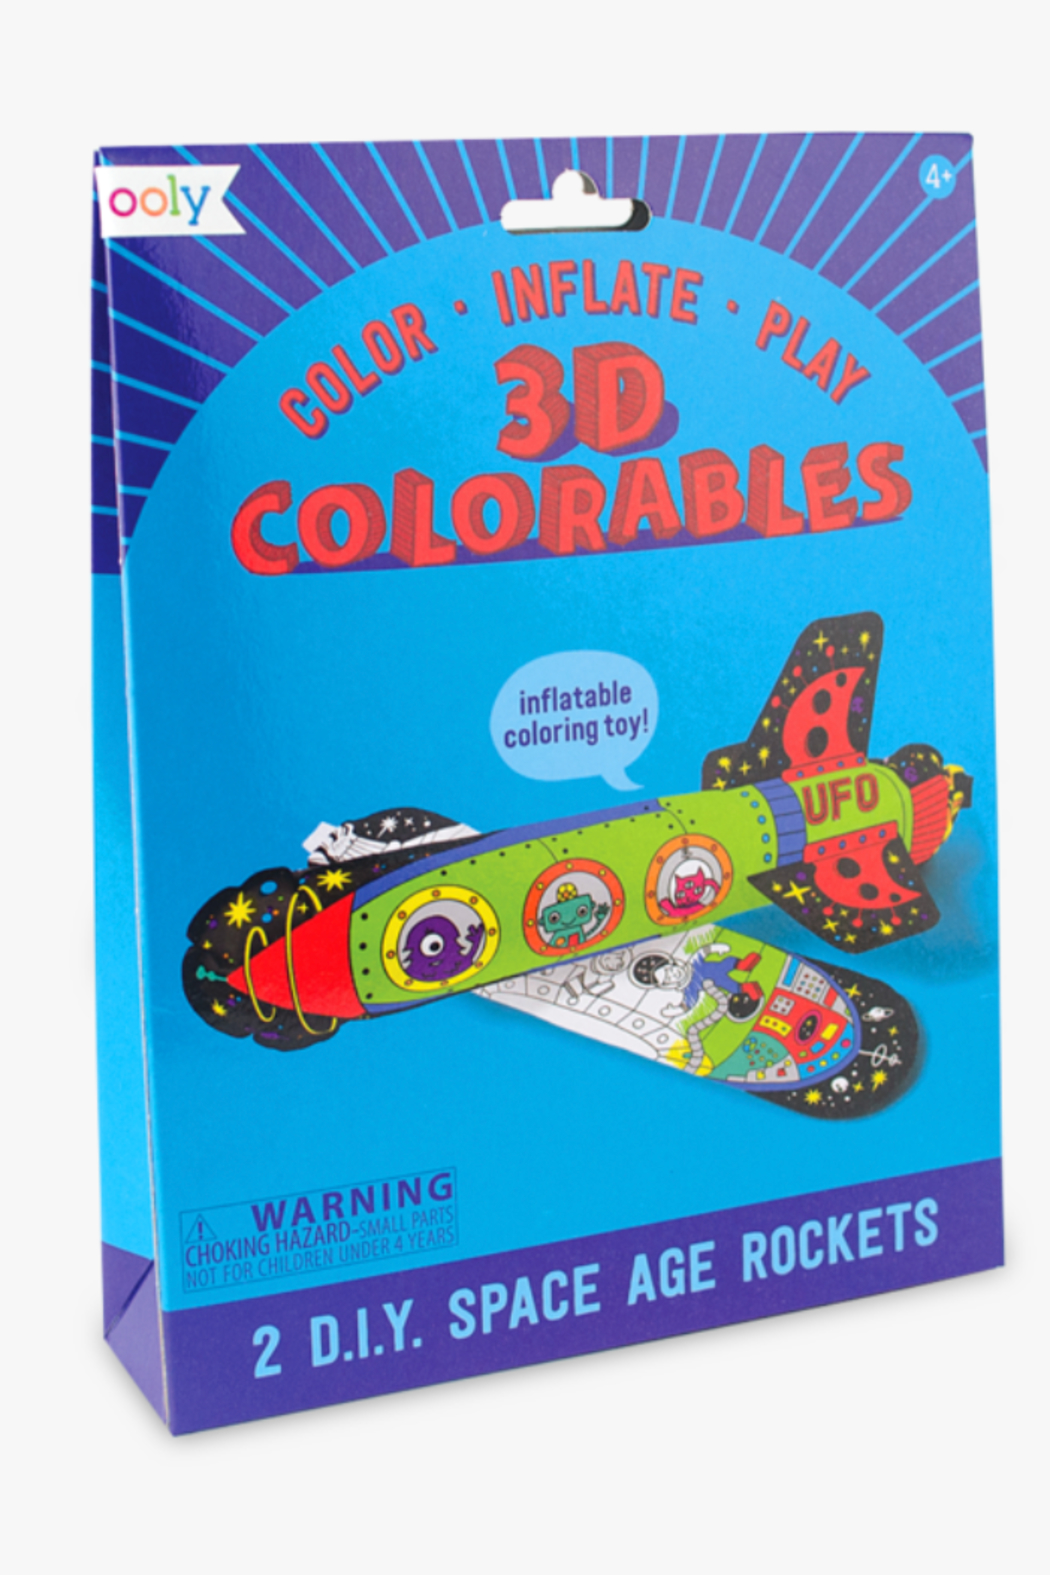 Ooly 3D Colorables Space Age Rockets - Main Image